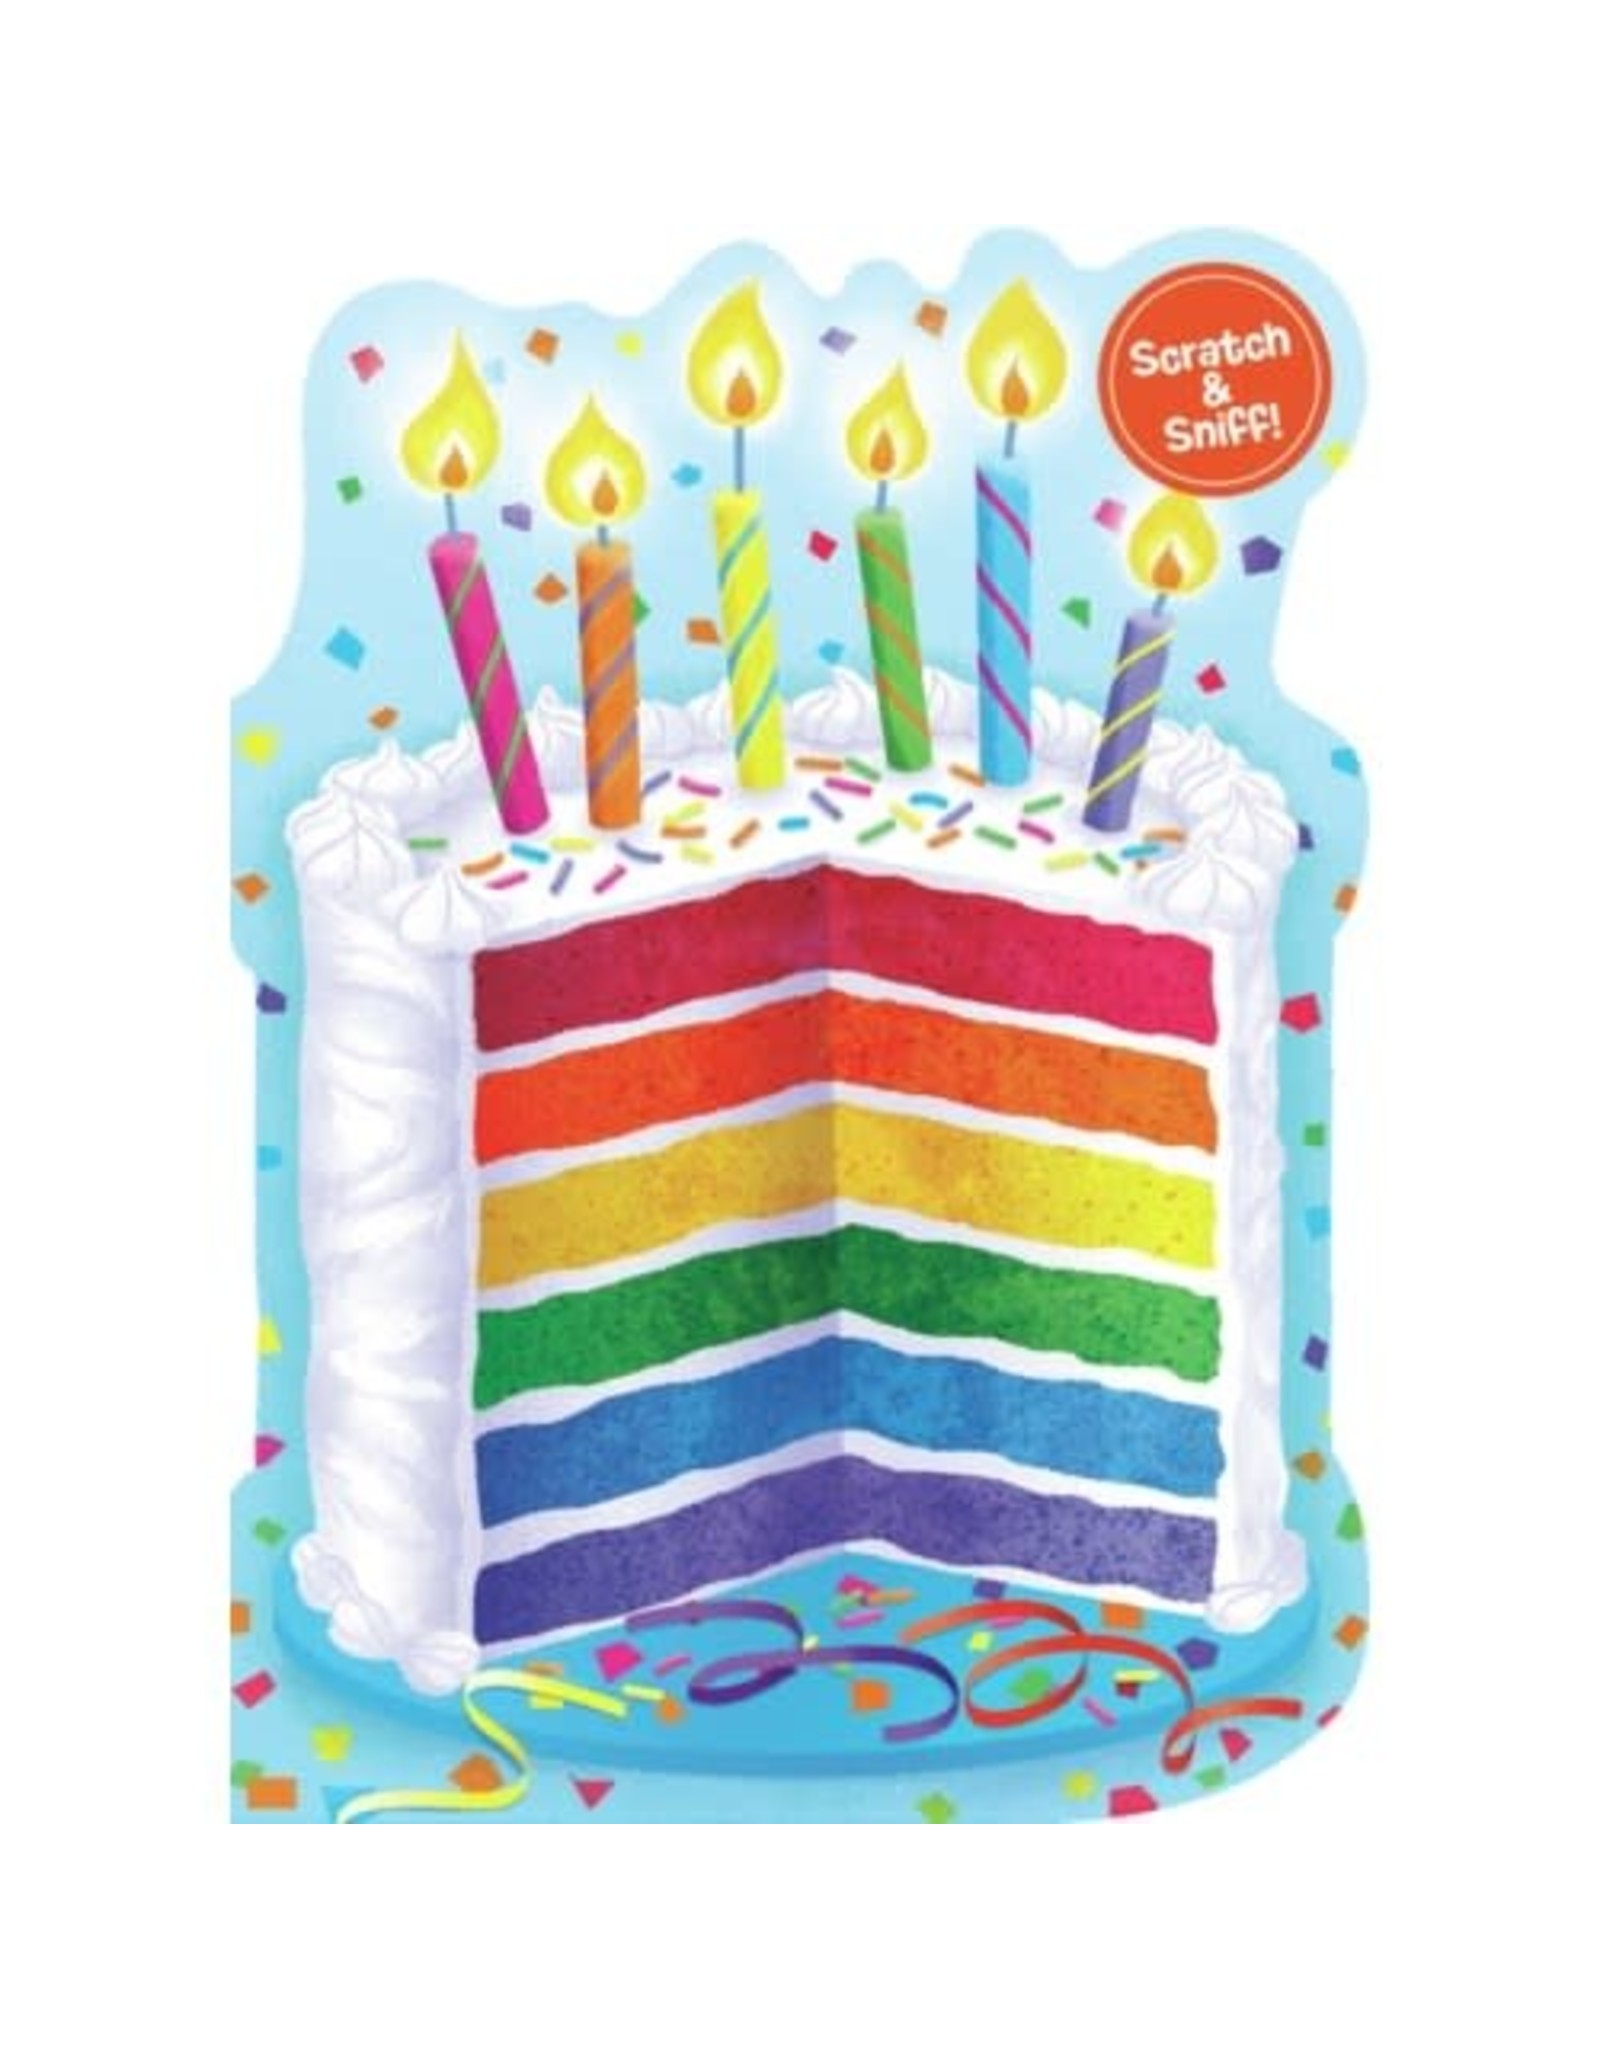 Peaceable Kingdom Rainbow Cake Scratch & Sniff Card